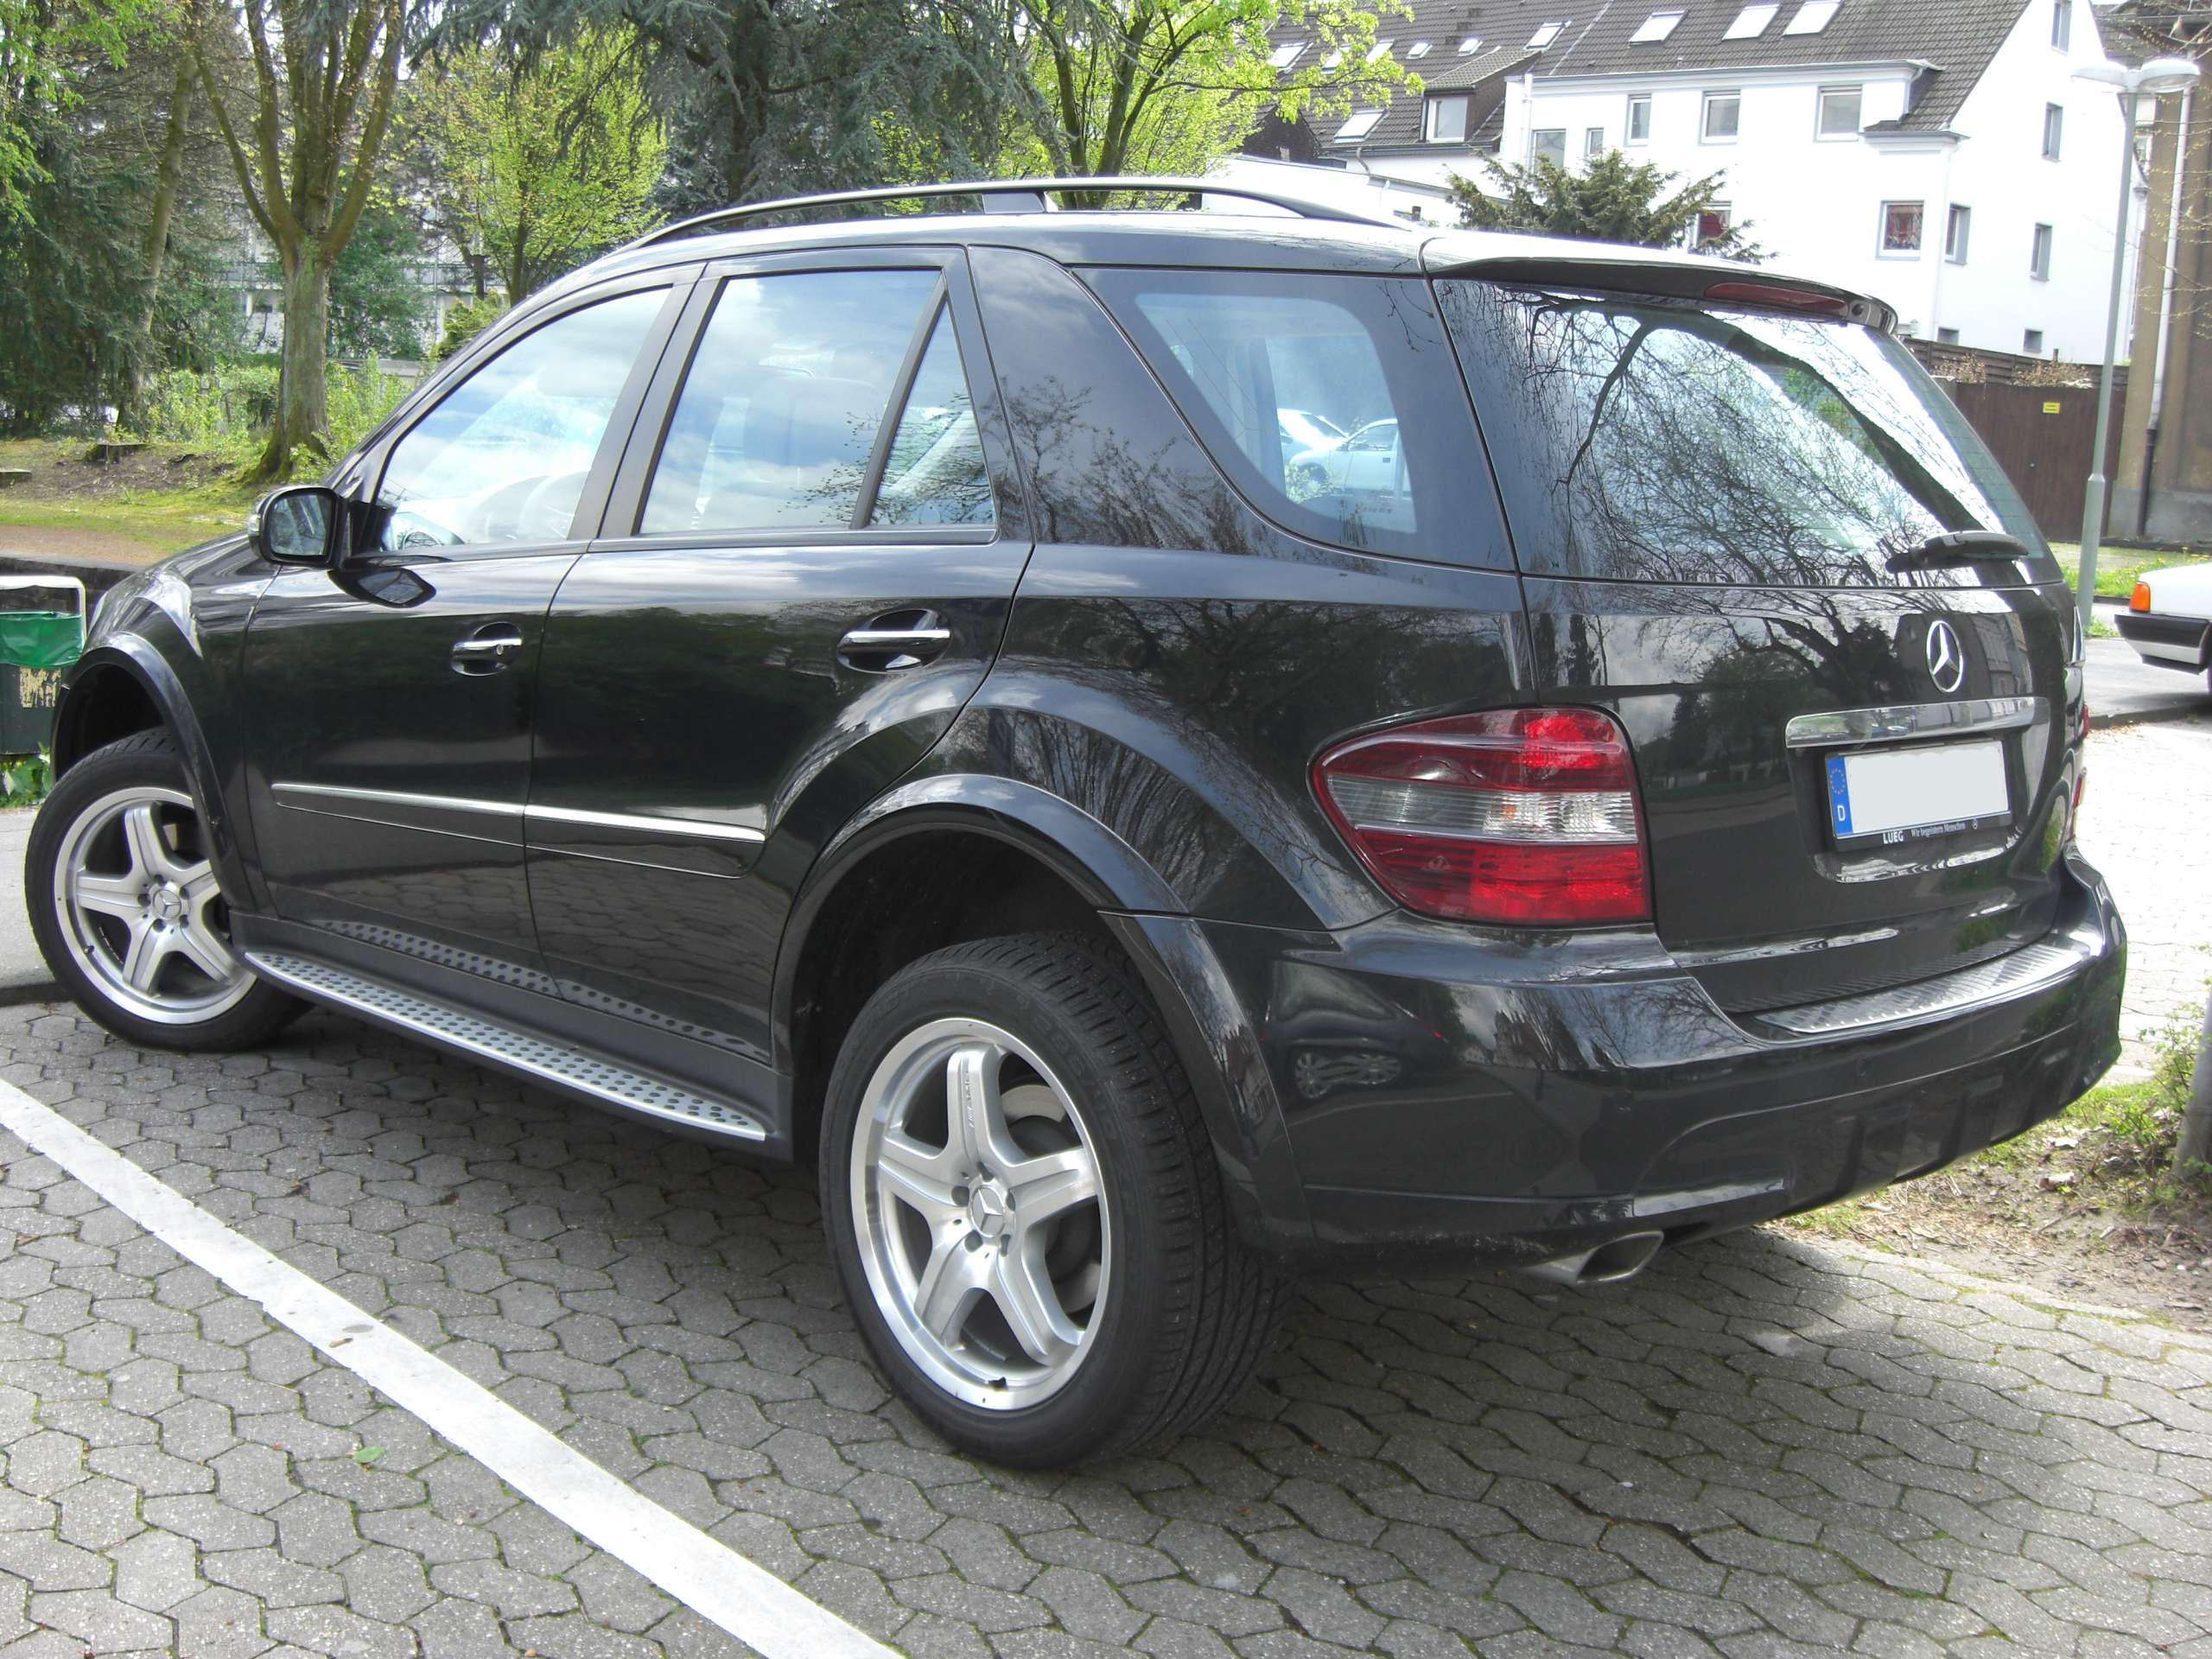 Driven Mercedes Ml350 Cdi Pictures additionally Wallpaper 33 additionally Watch as well Watch in addition Watch. on mercedes benz ml 350